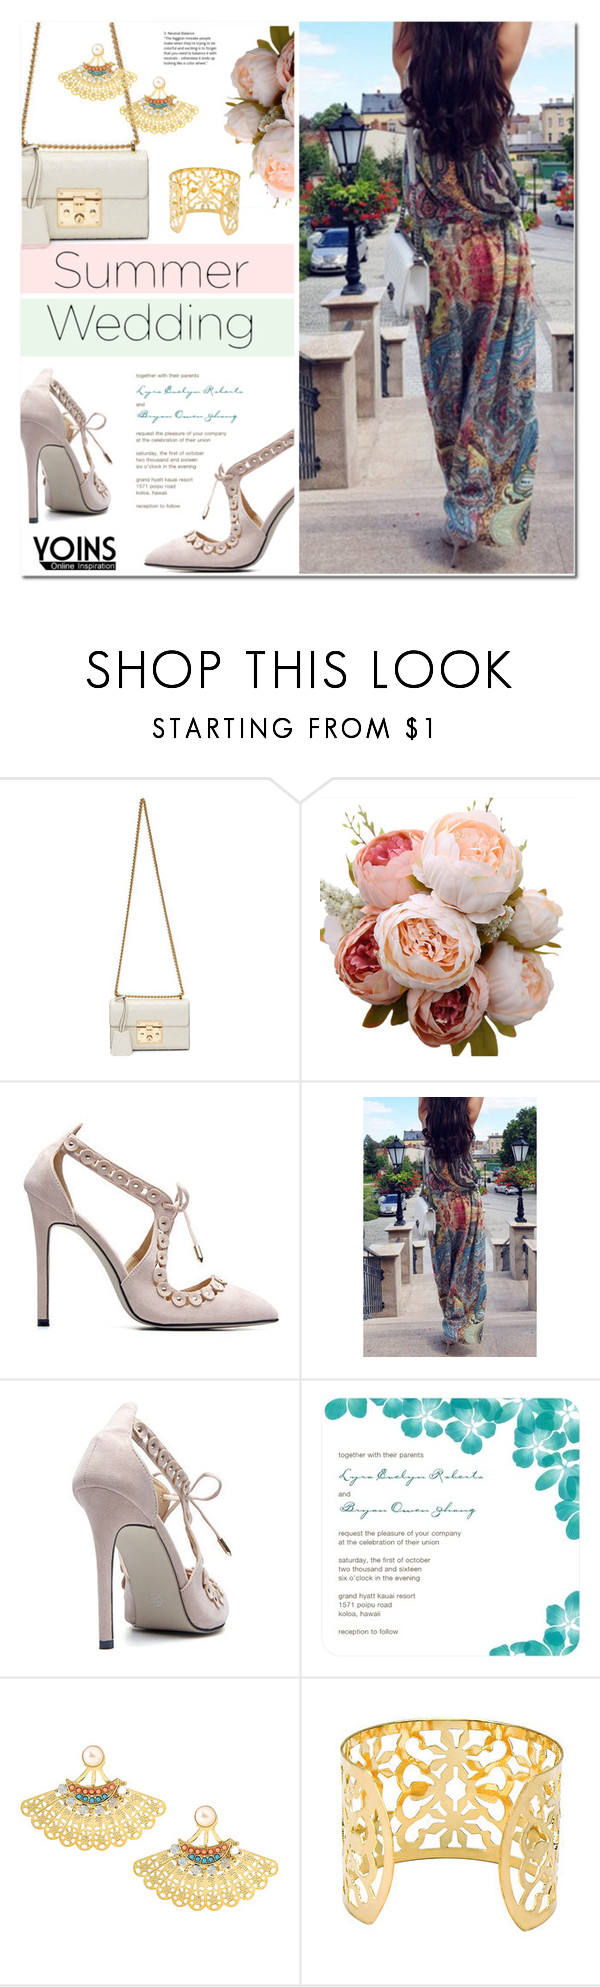 """""""Say I Do: Summer Weddings with YOINS"""" by sofi-danka ❤ liked on Polyvore featuring Gucci, yoins, yoinscollection and loveyoins"""